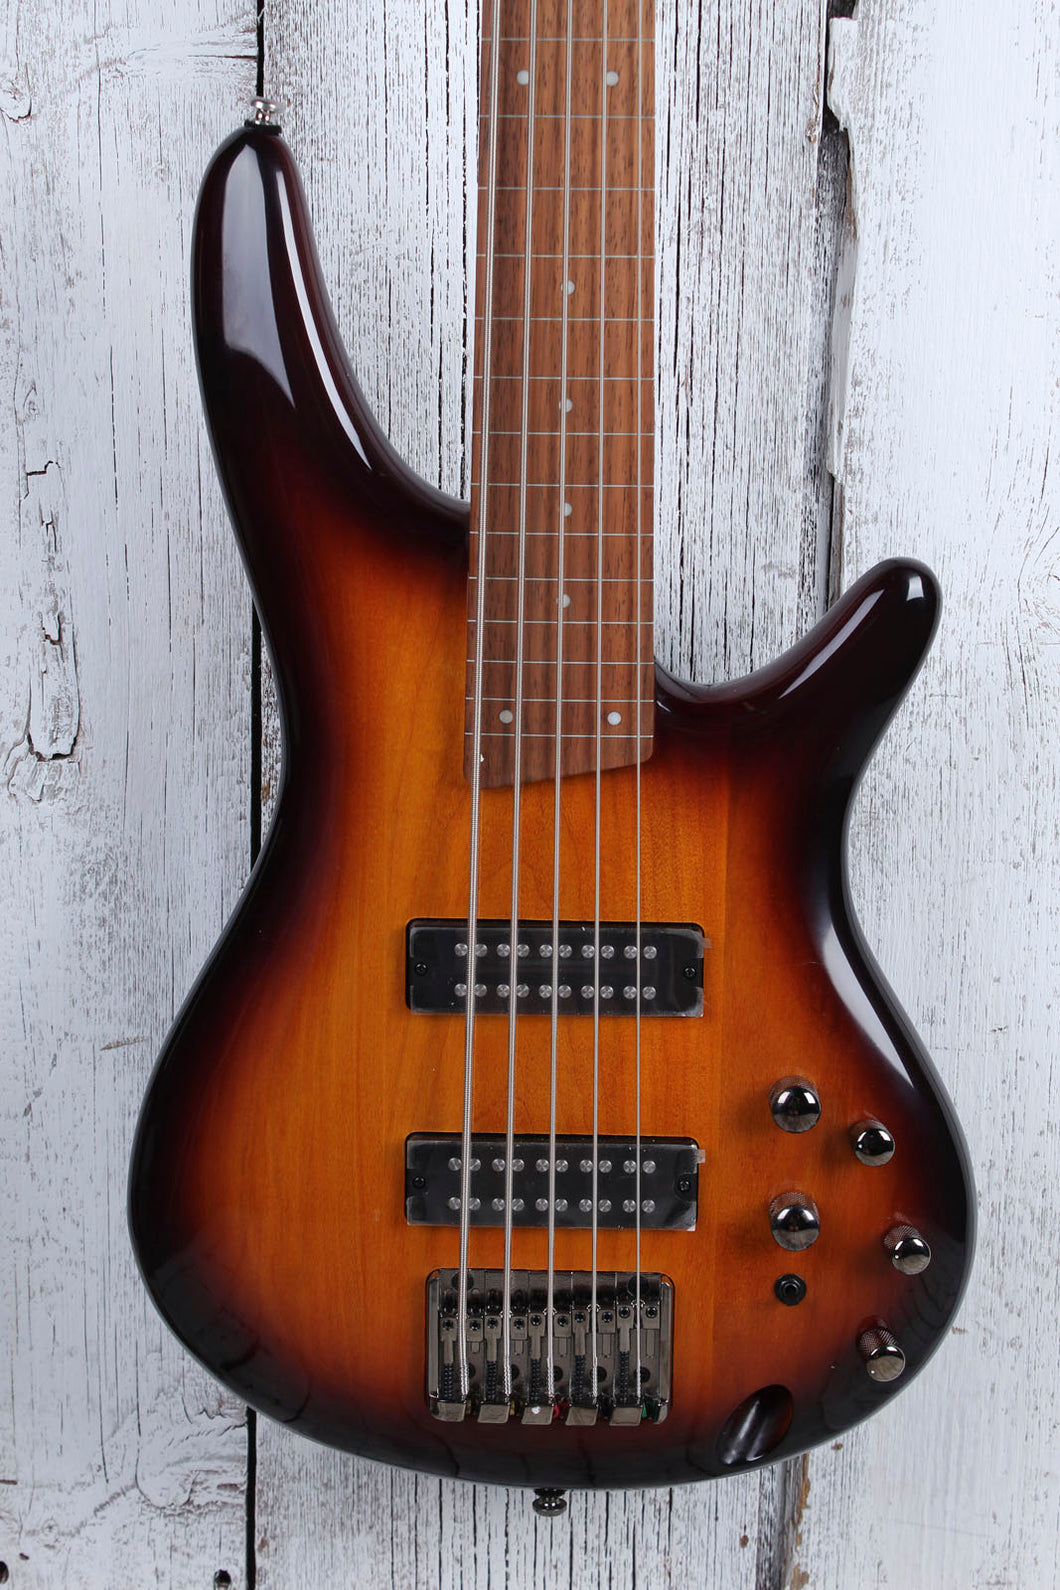 Ibanez SR375EF Fretless 5 String Electric Bass Guitar Brown Burst Finish